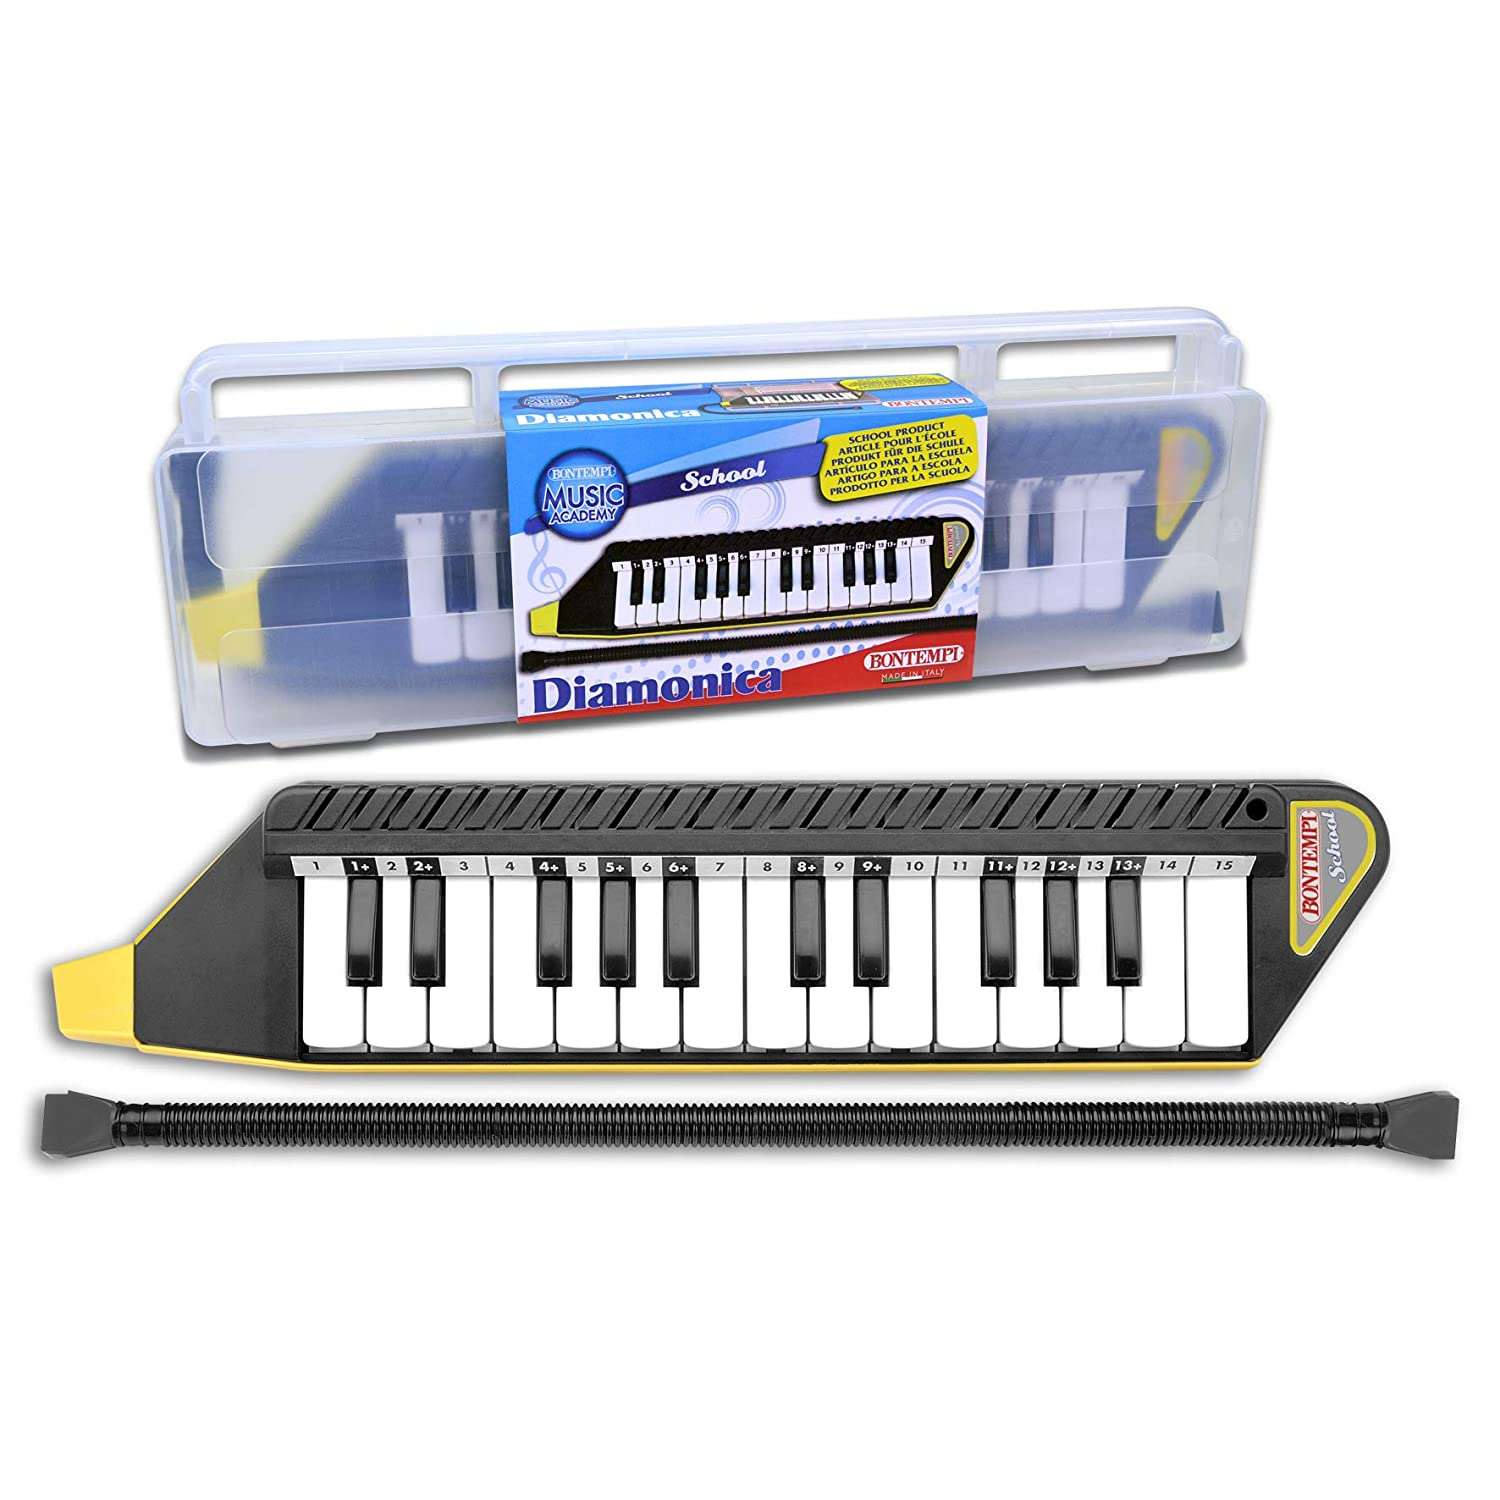 Bontempi/ 334262/Cover /33/ /4262/Keyboard with 25/Keys with White Black